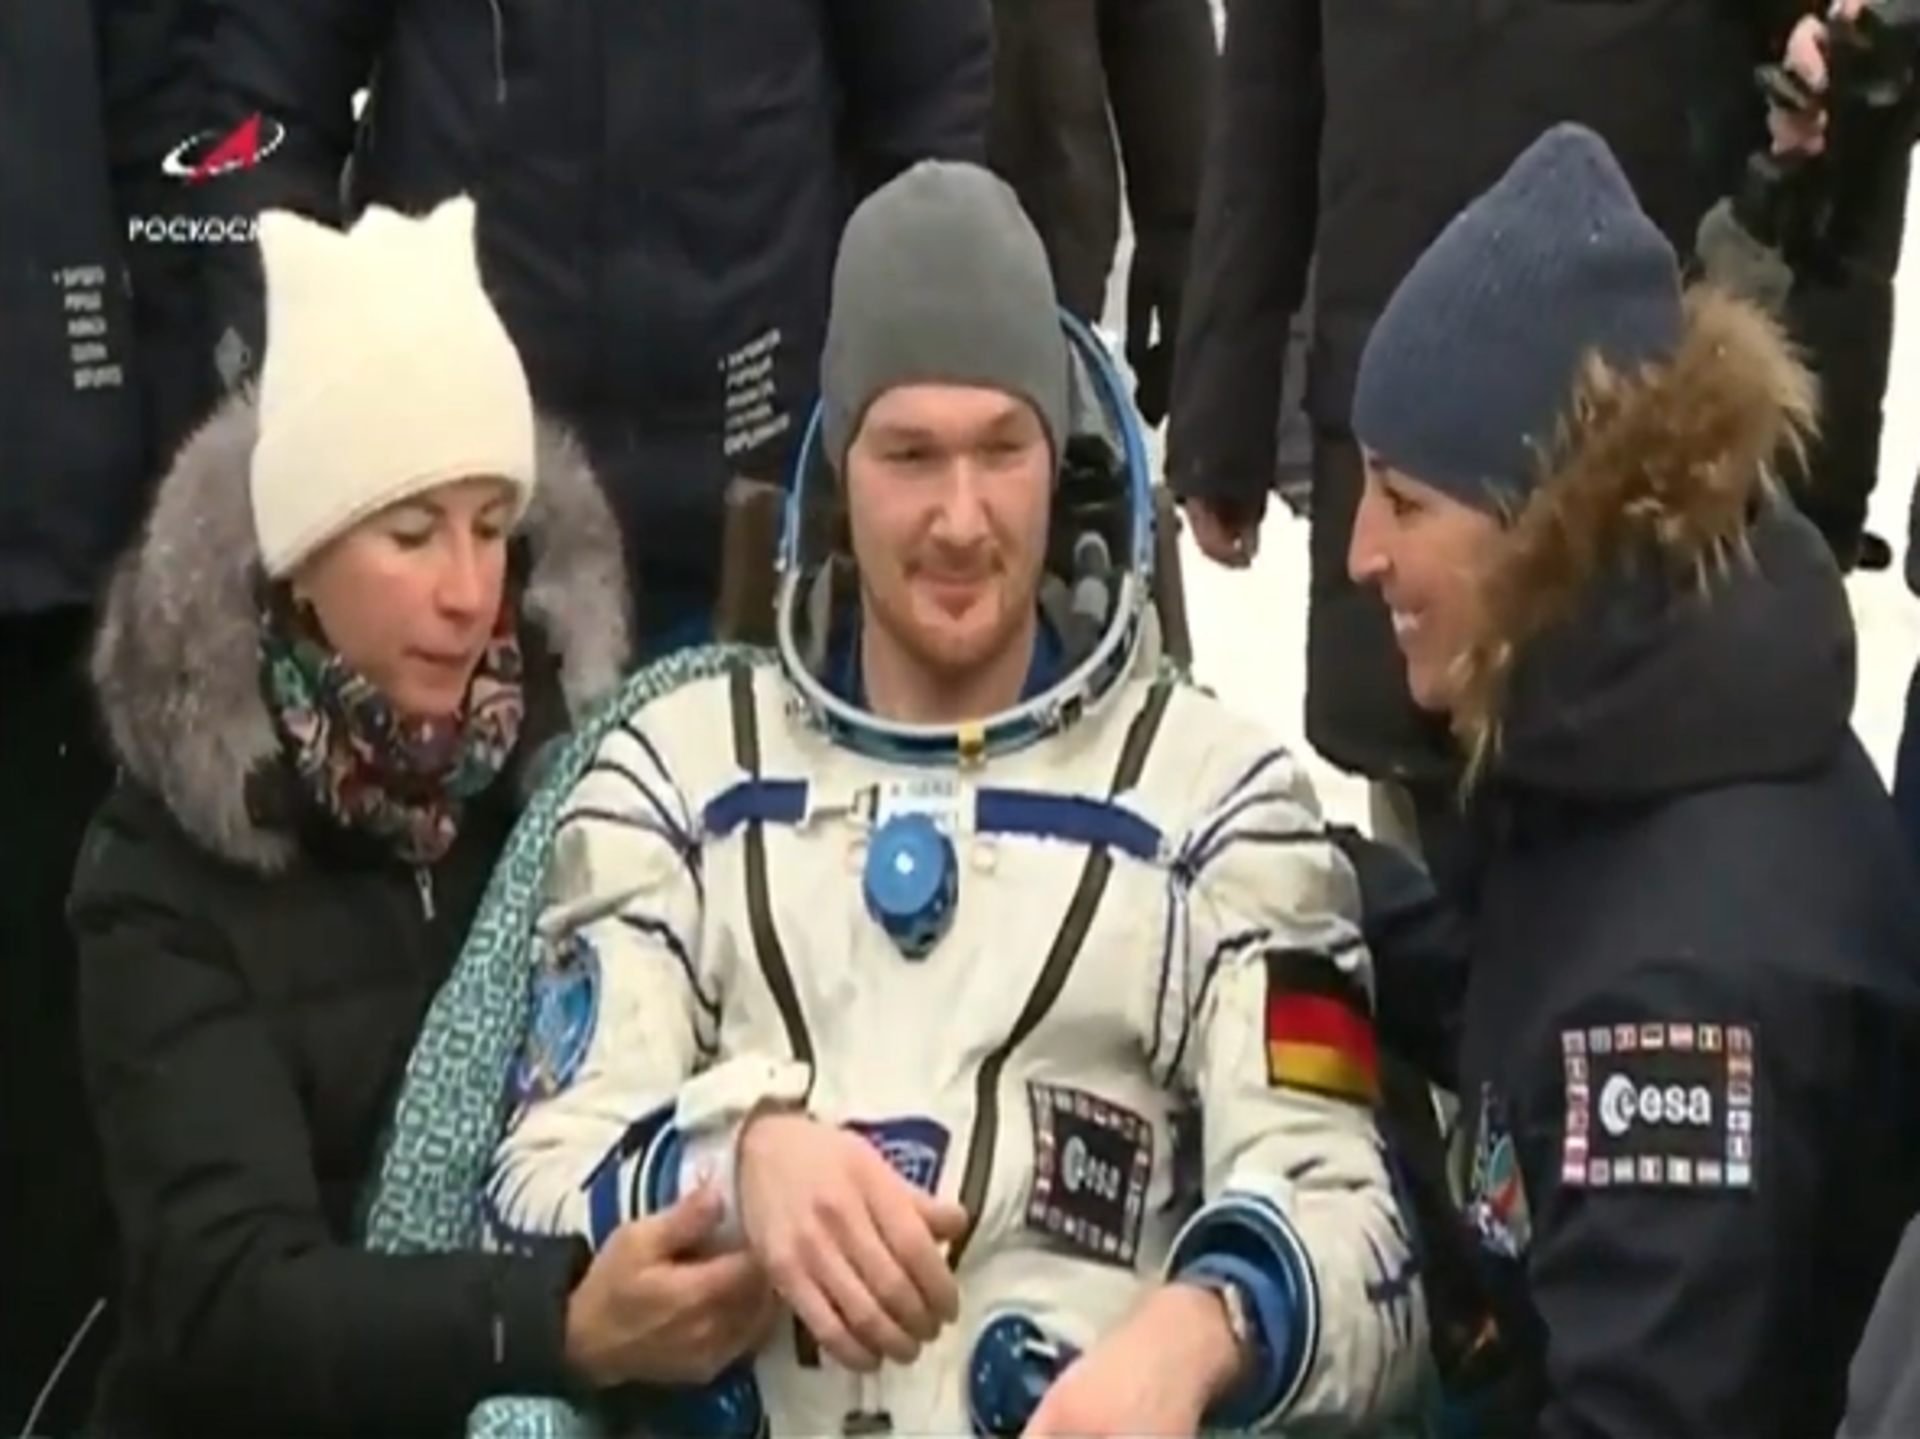 Alexander Gerst's second landing on Earth